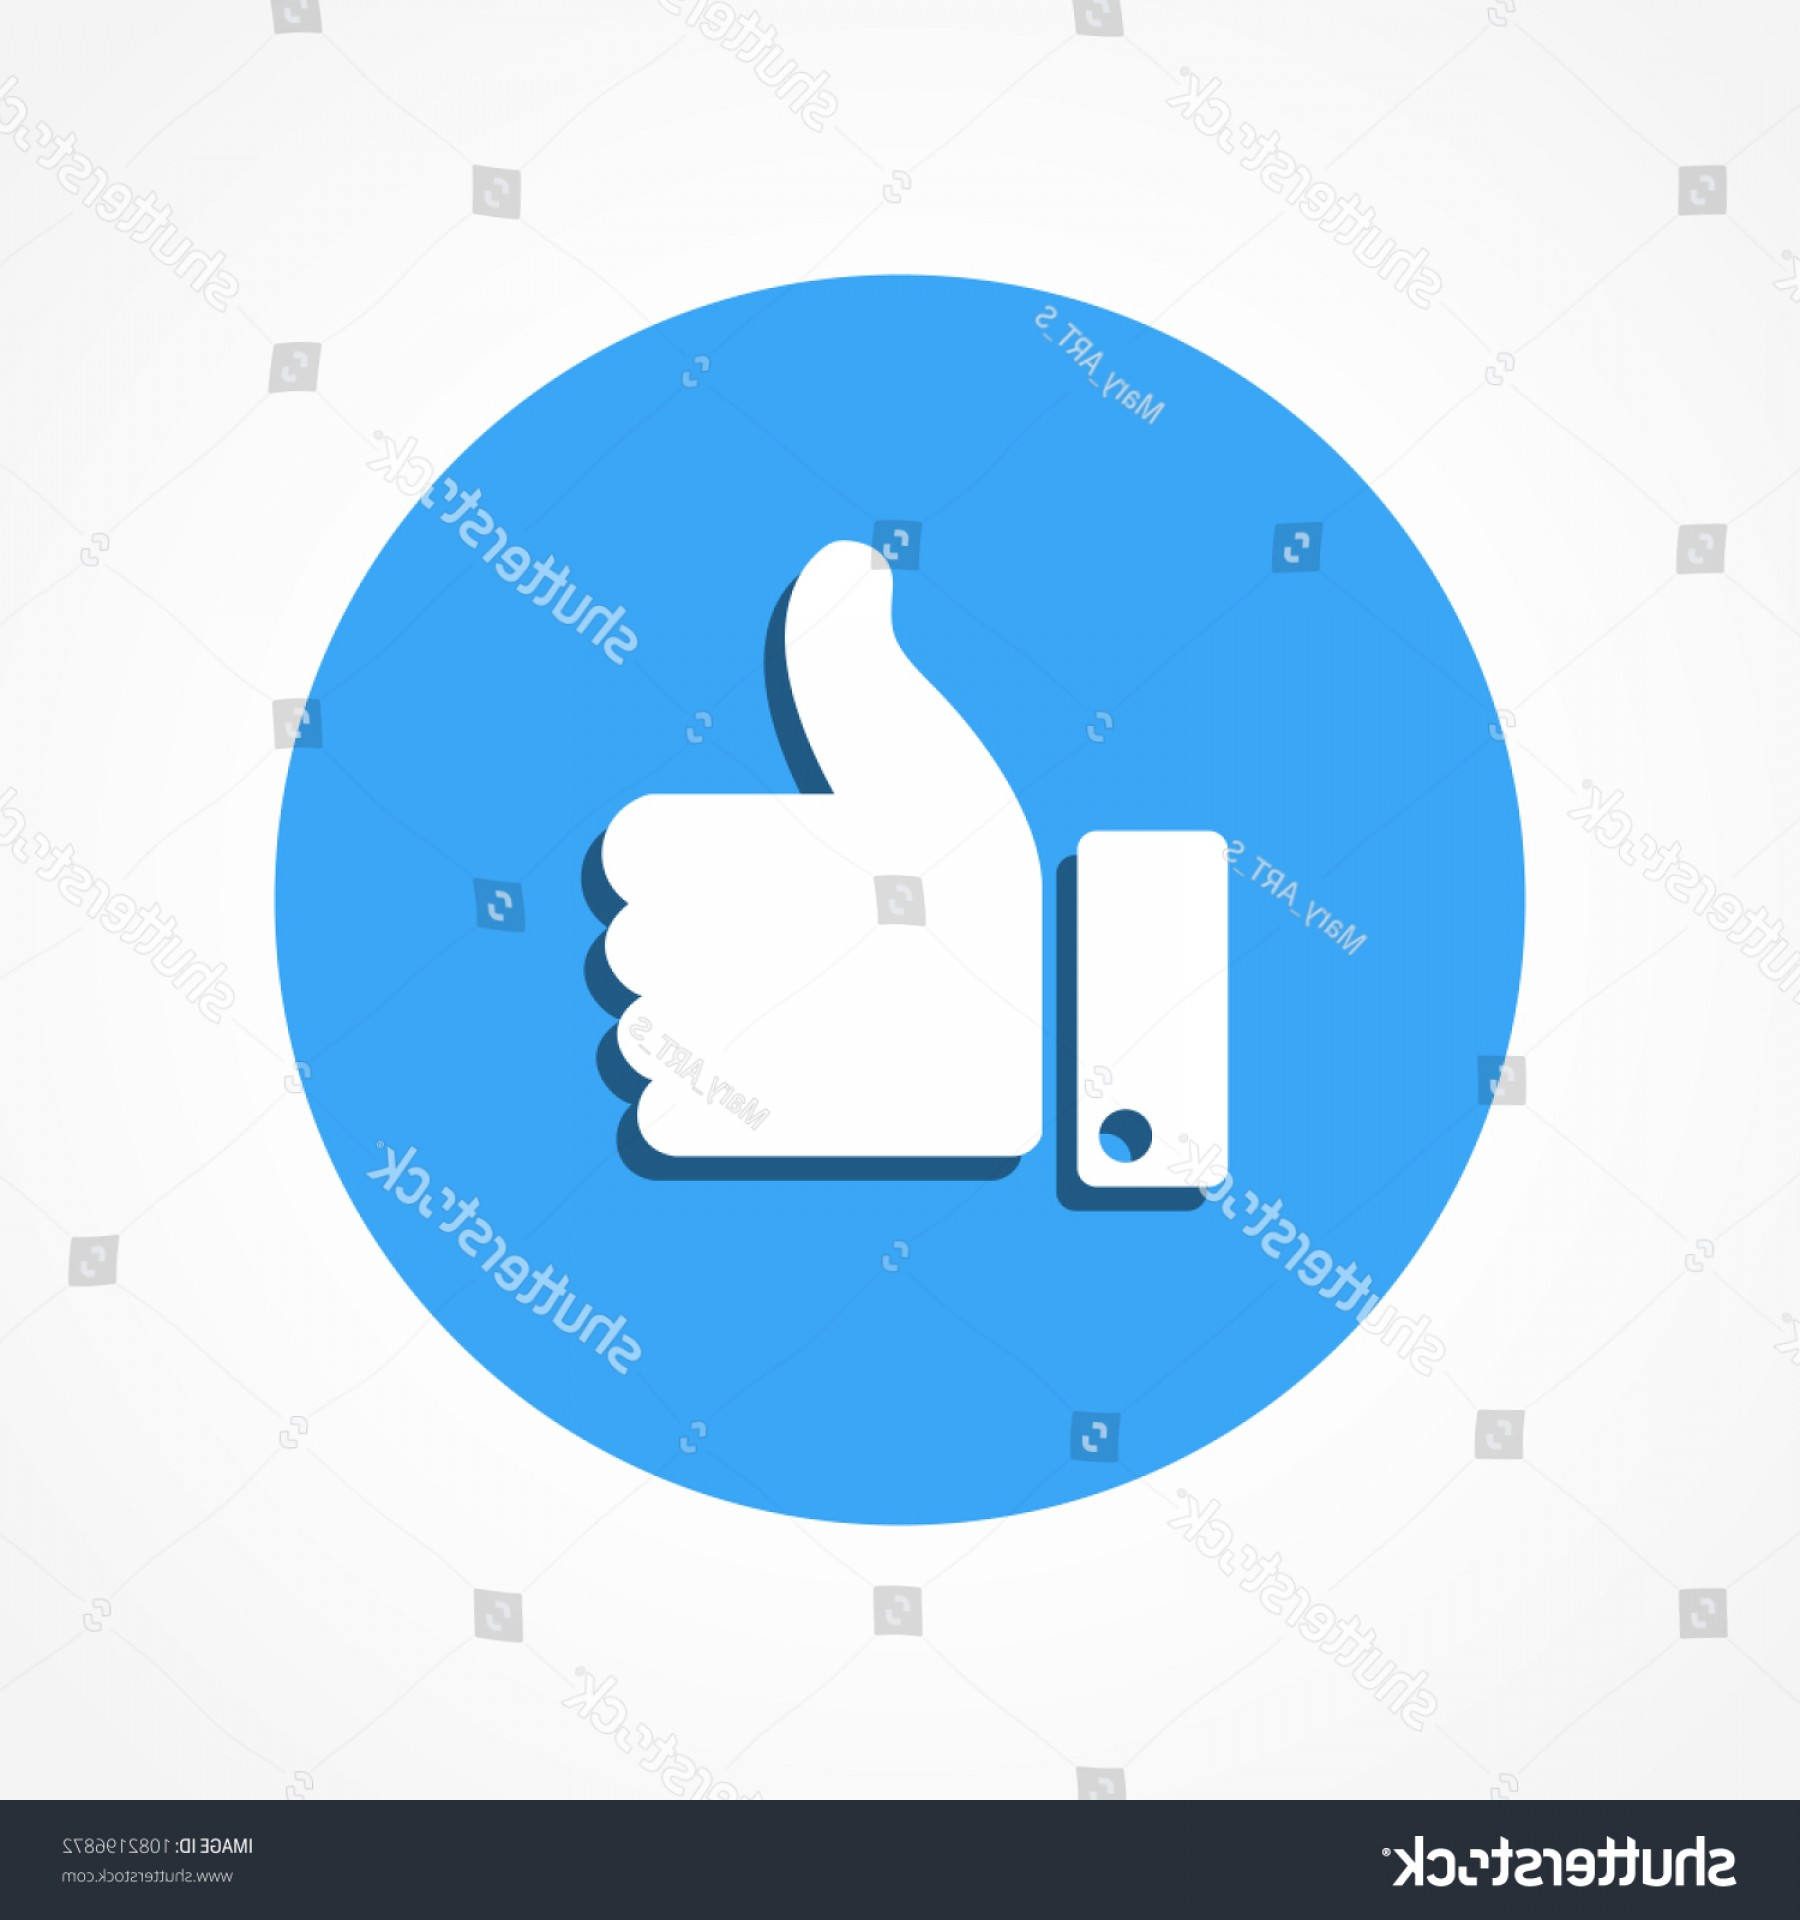 Finger Facebook Vector: Social Media Facebook Like Thumb Emoticon